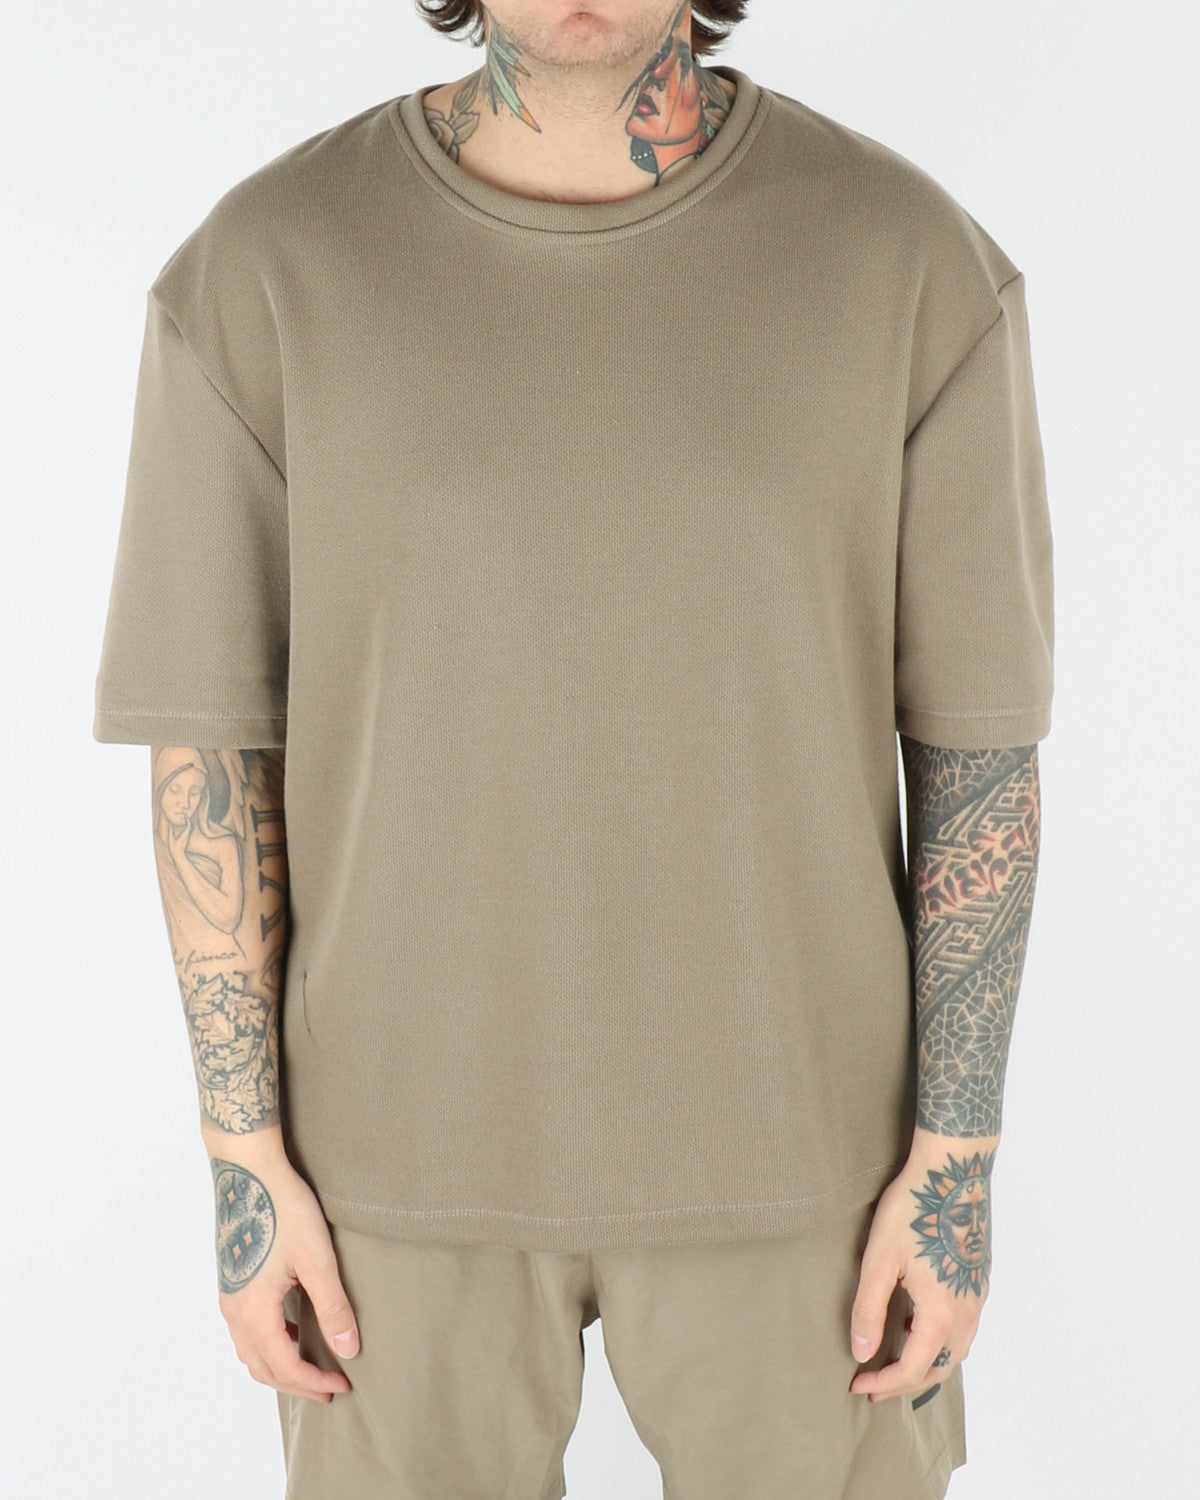 halo newline_drop_t-shirt_light olive_view_2_3